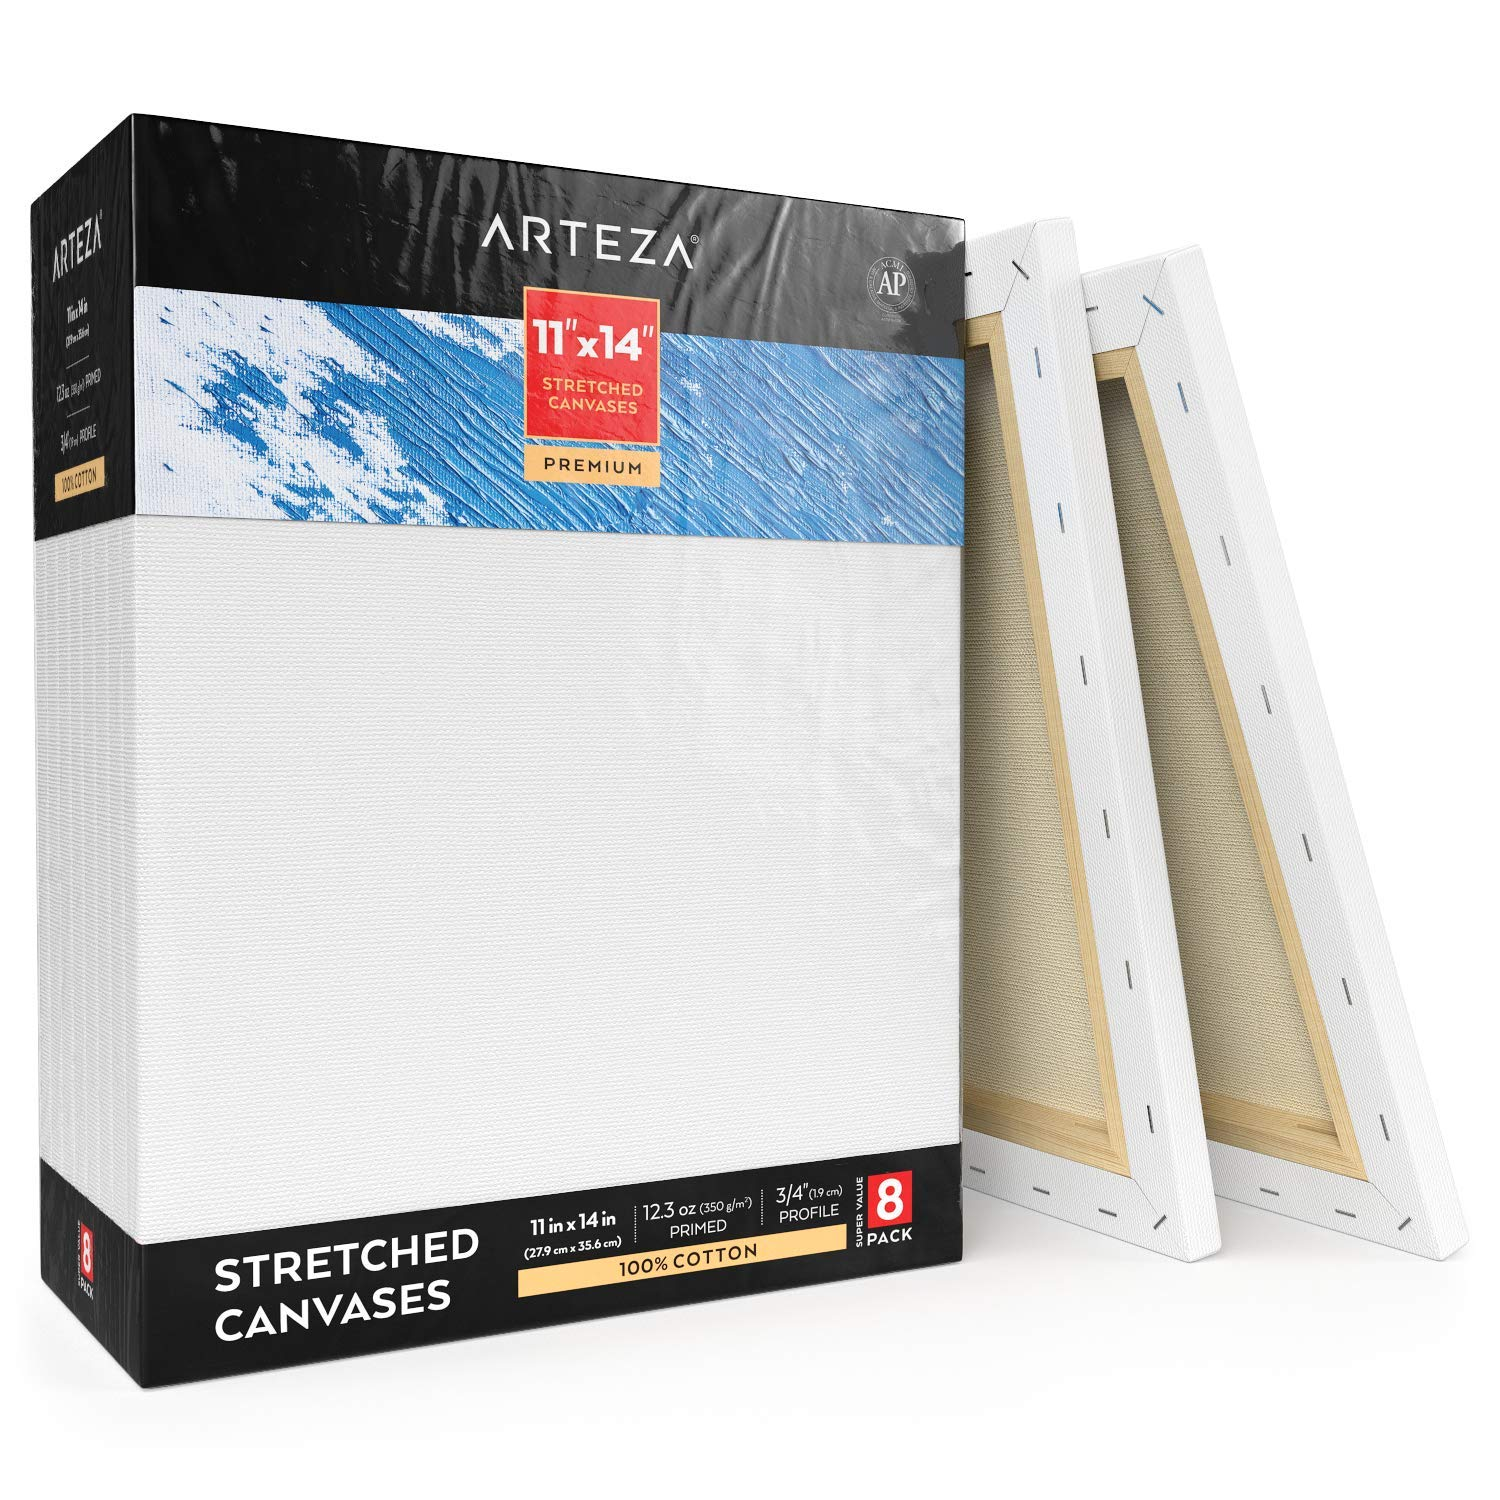 Arteza 11x14'' Professional Stretched White Blank Canvas, Bulk Pack of 8, Primed, 100% Cotton for Painting, Acrylic Pouring, Oil Paint & Wet Art Media, Canvases for Artist, Hobby Painters & Beginner by ARTEZA